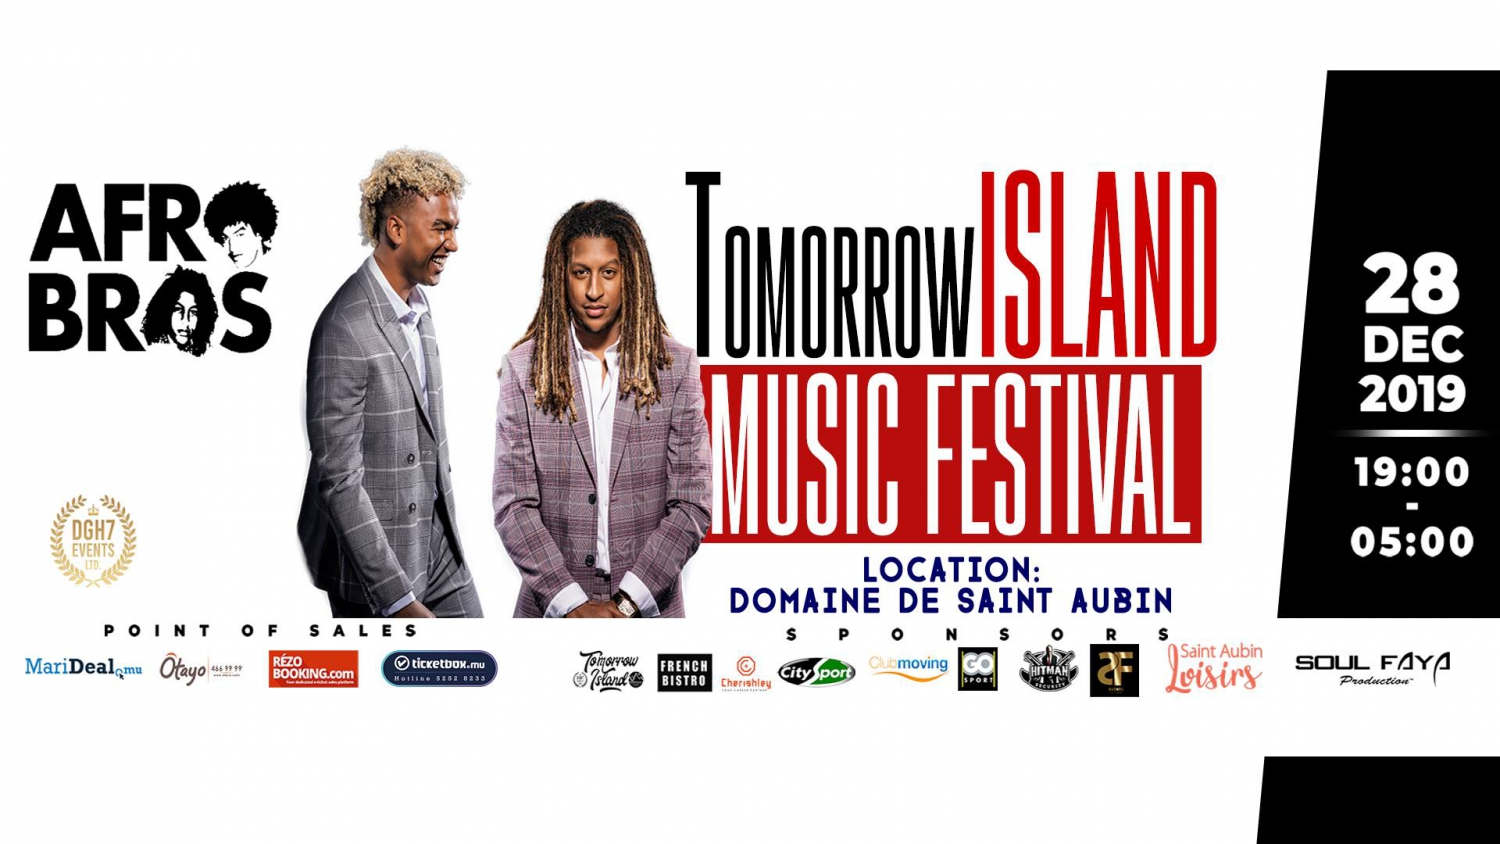 TomorrowISLAND Music Festival 2nd Edition (AFRO BROS)